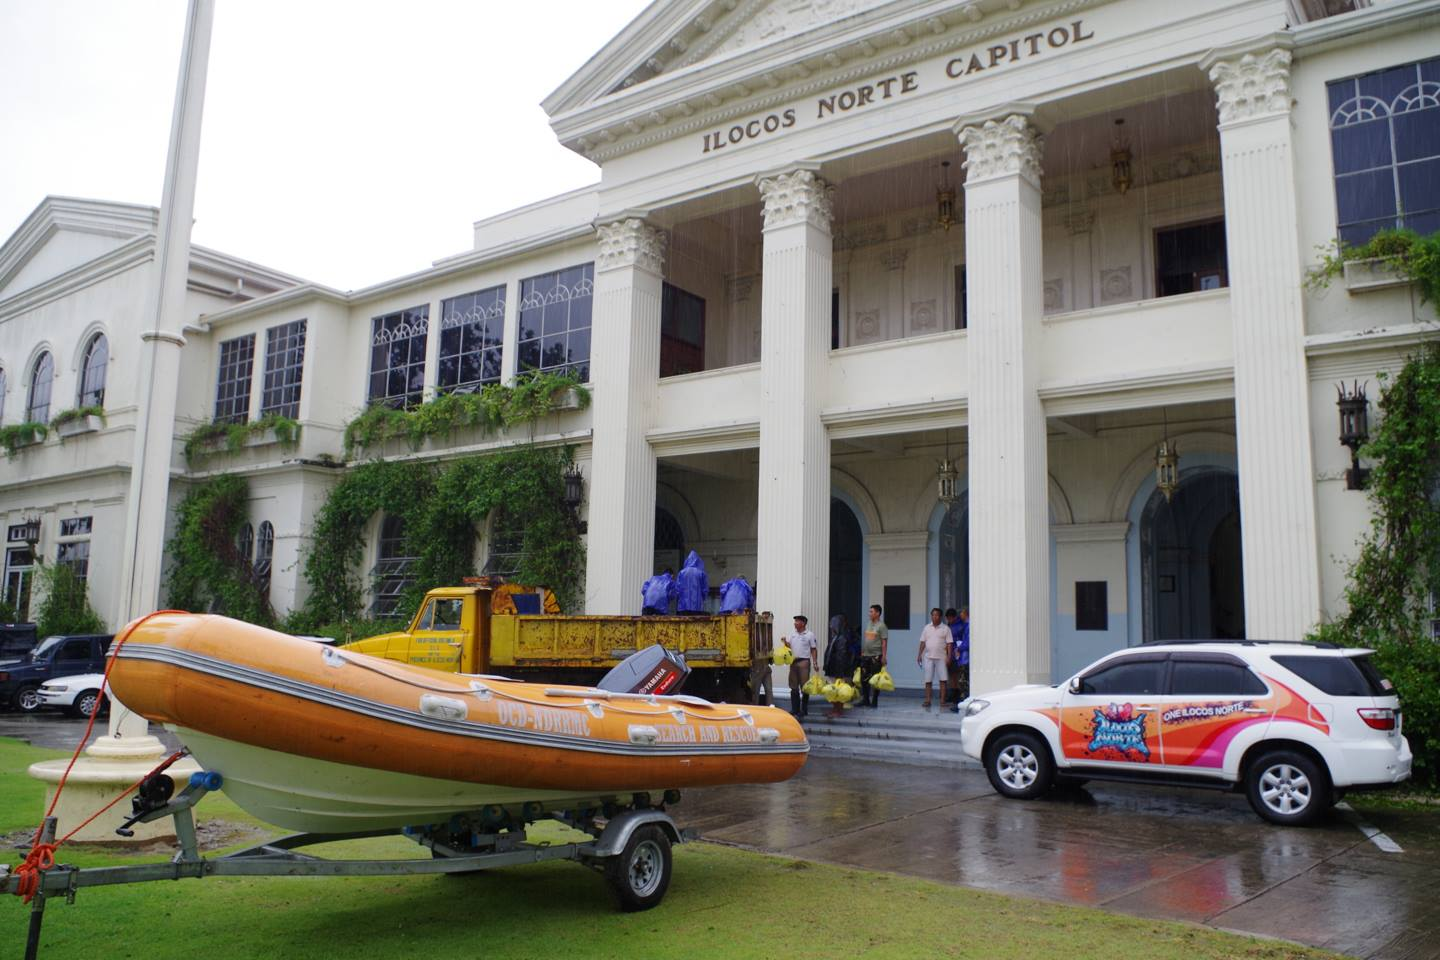 RESCUE EQUIPMENT. A rubber boat on standby at the Ilocos Norte Capitol. Photo from provincial government